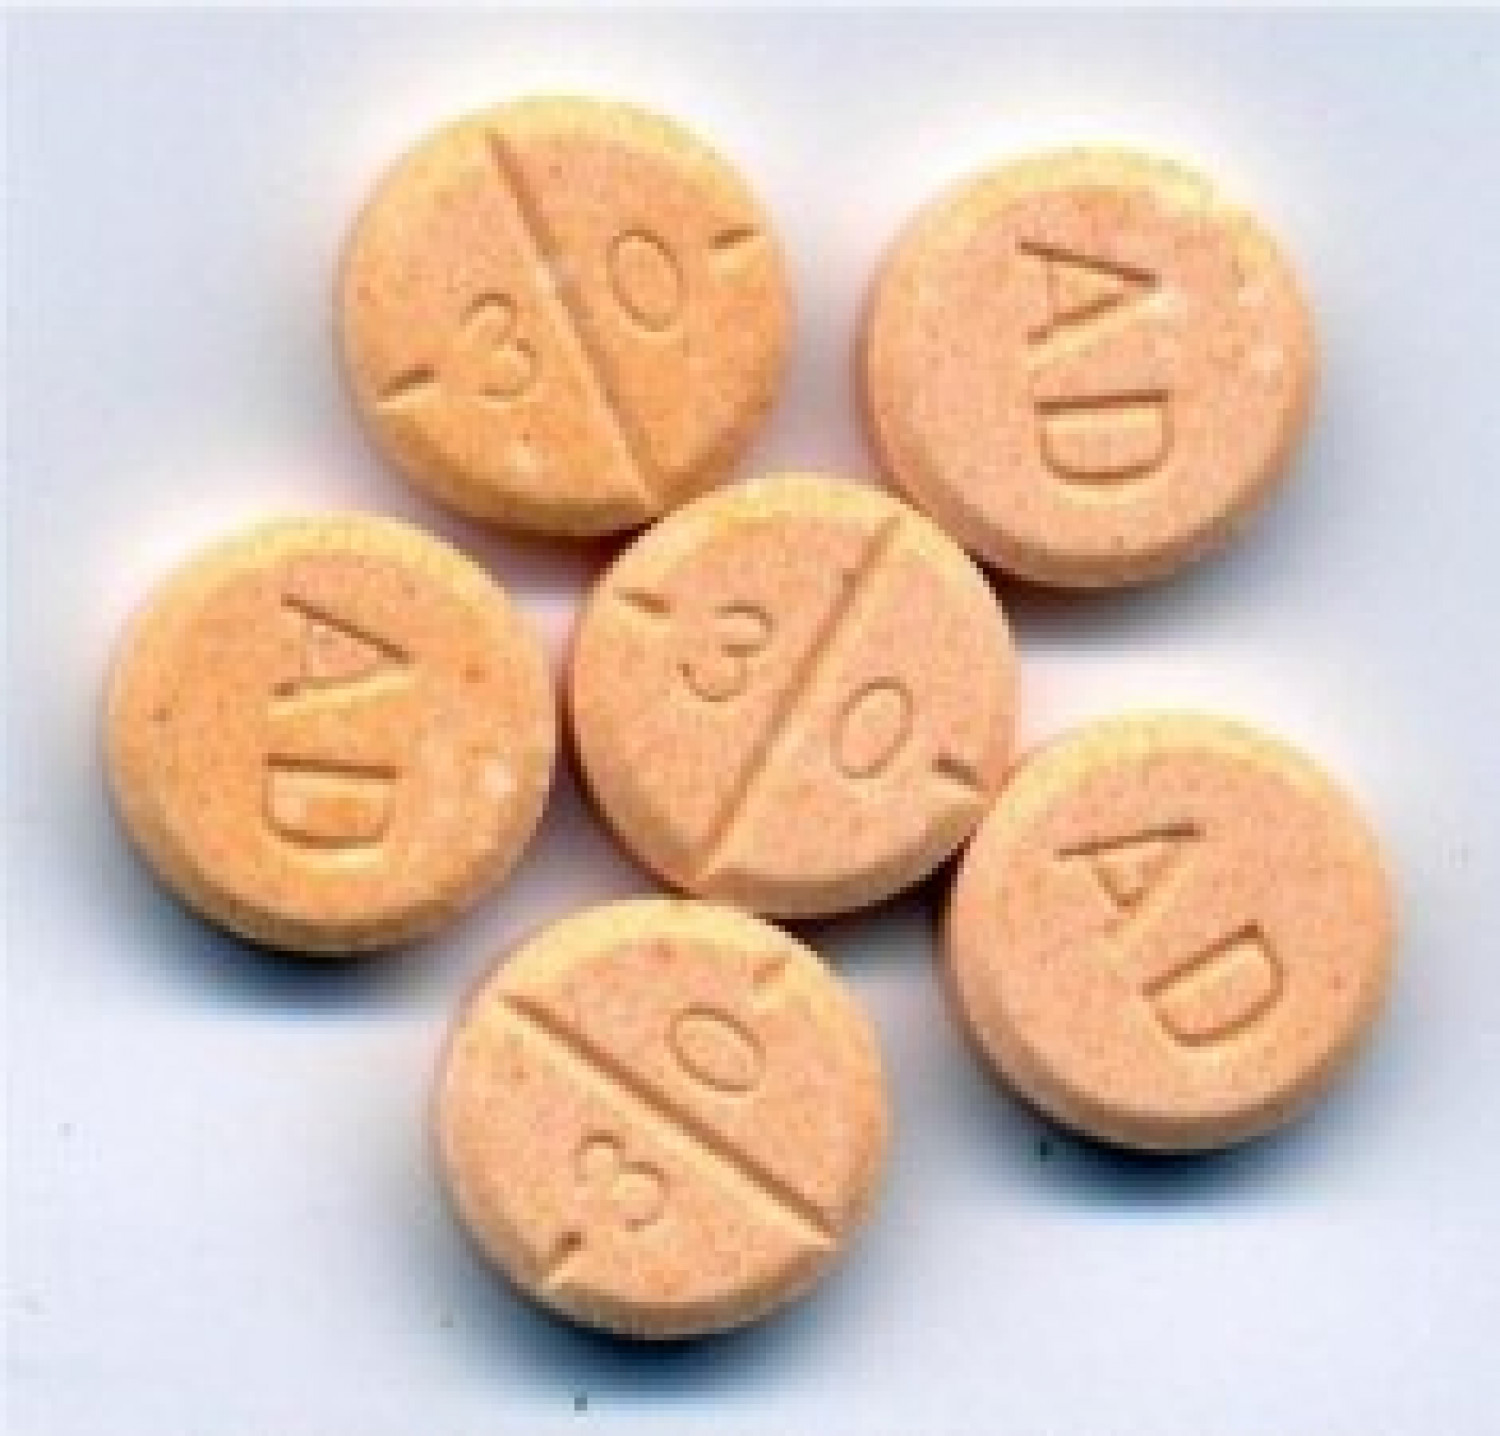 The   Best Adderall Alternatives in       and Beyond    Corpina Drugs Order Authentic Adderall